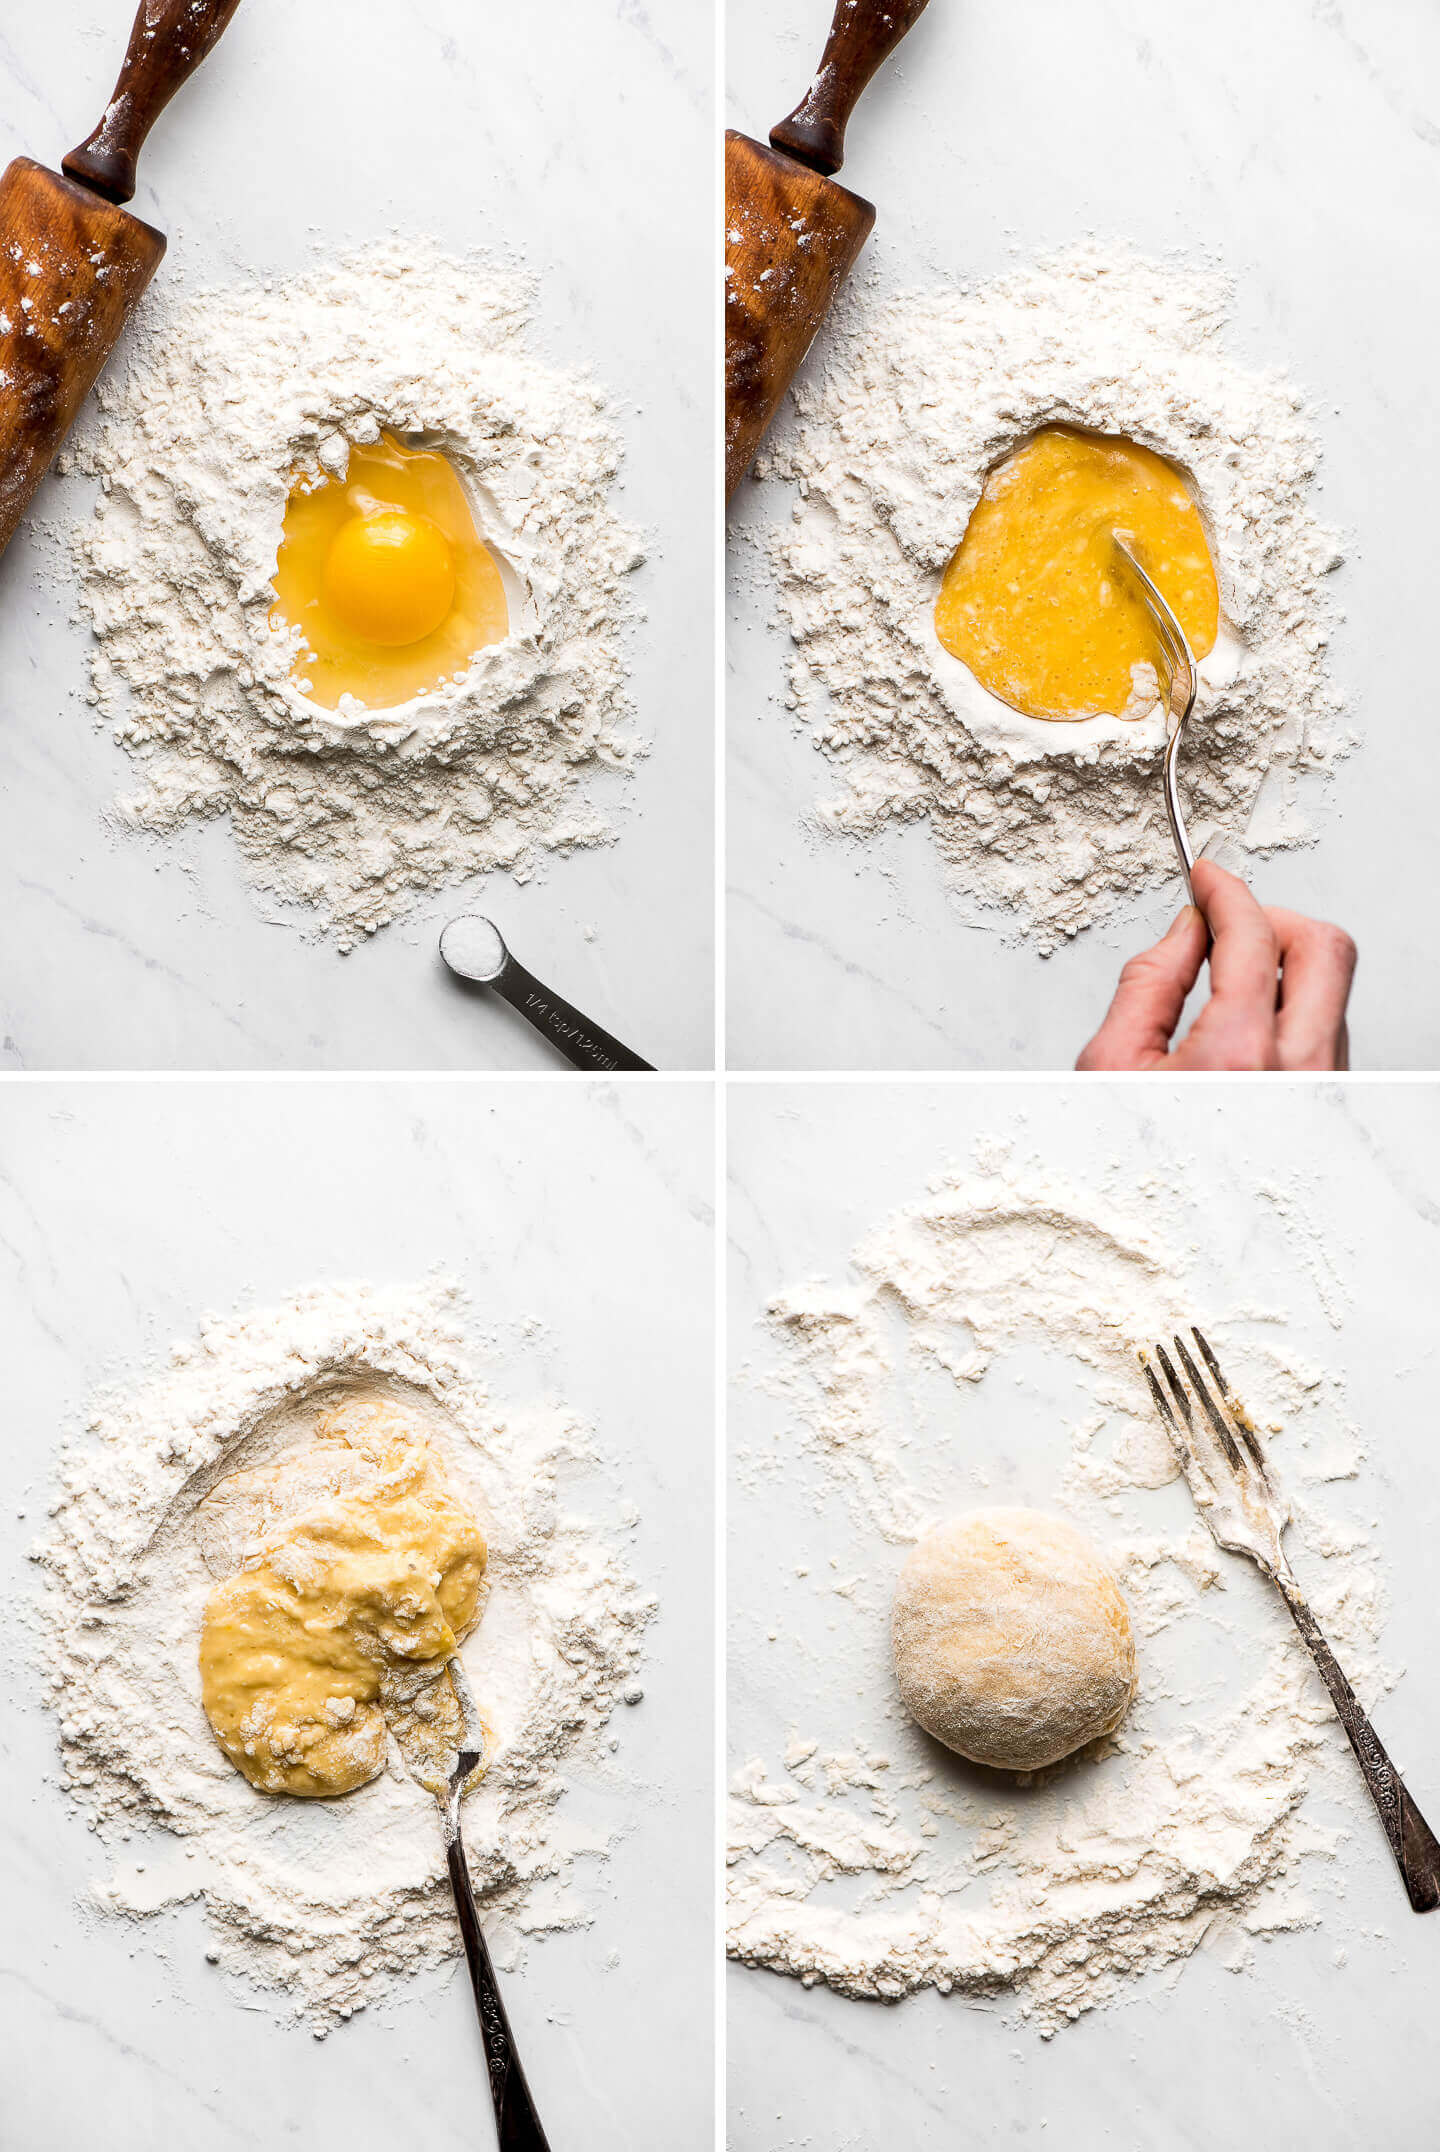 Mixing an egg and salt into flour on a marble surface to form a dough.